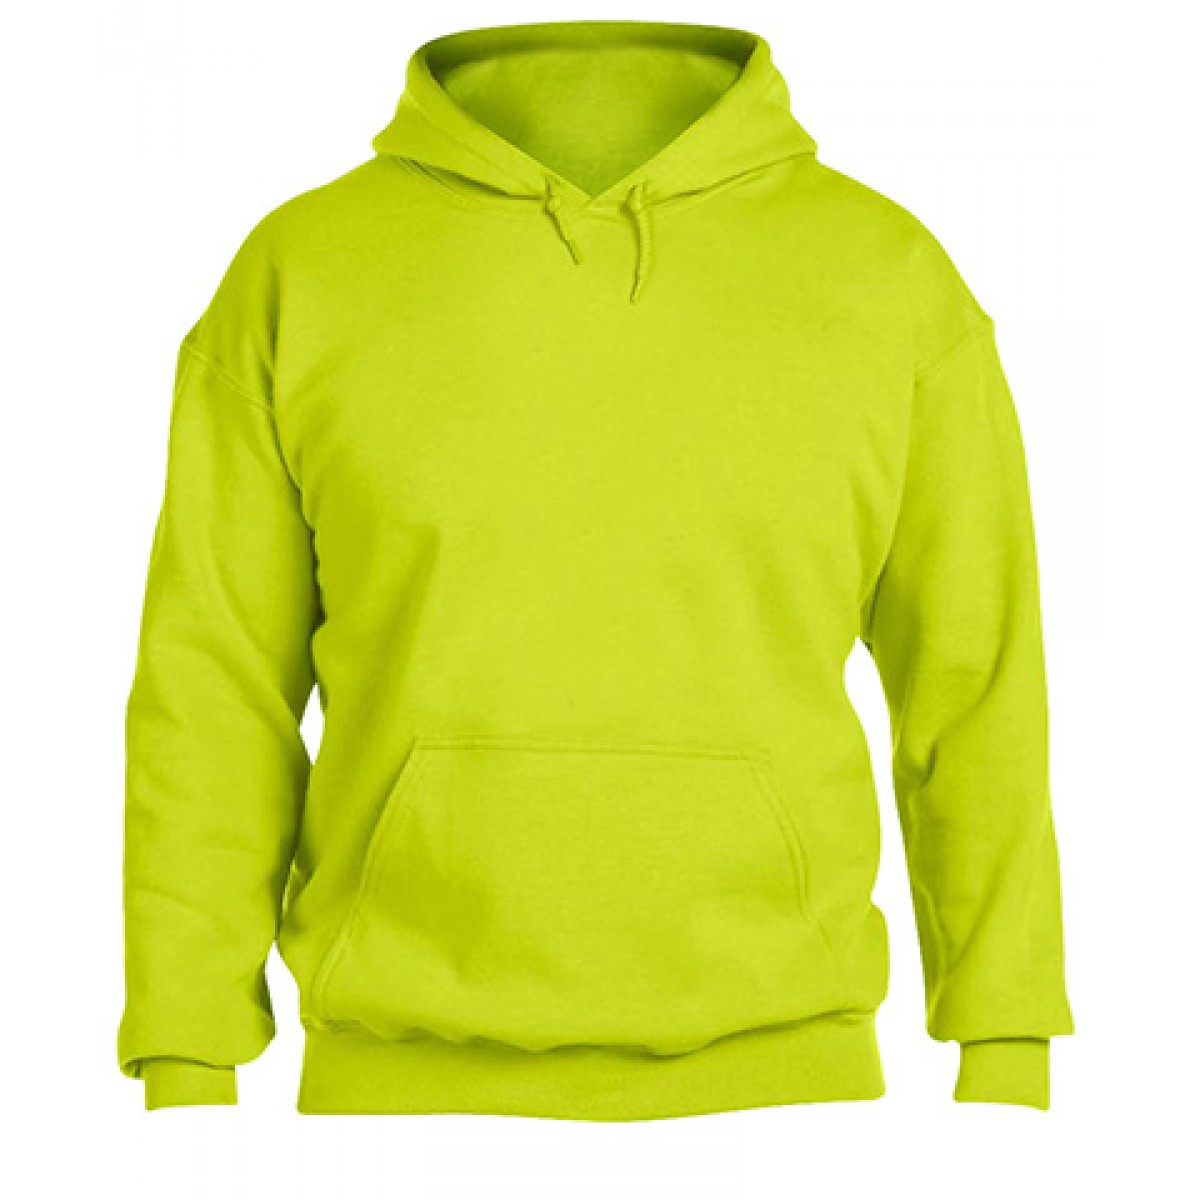 Solid Hooded Sweatshirt  50/50 Heavy Blend-Neon Green-M